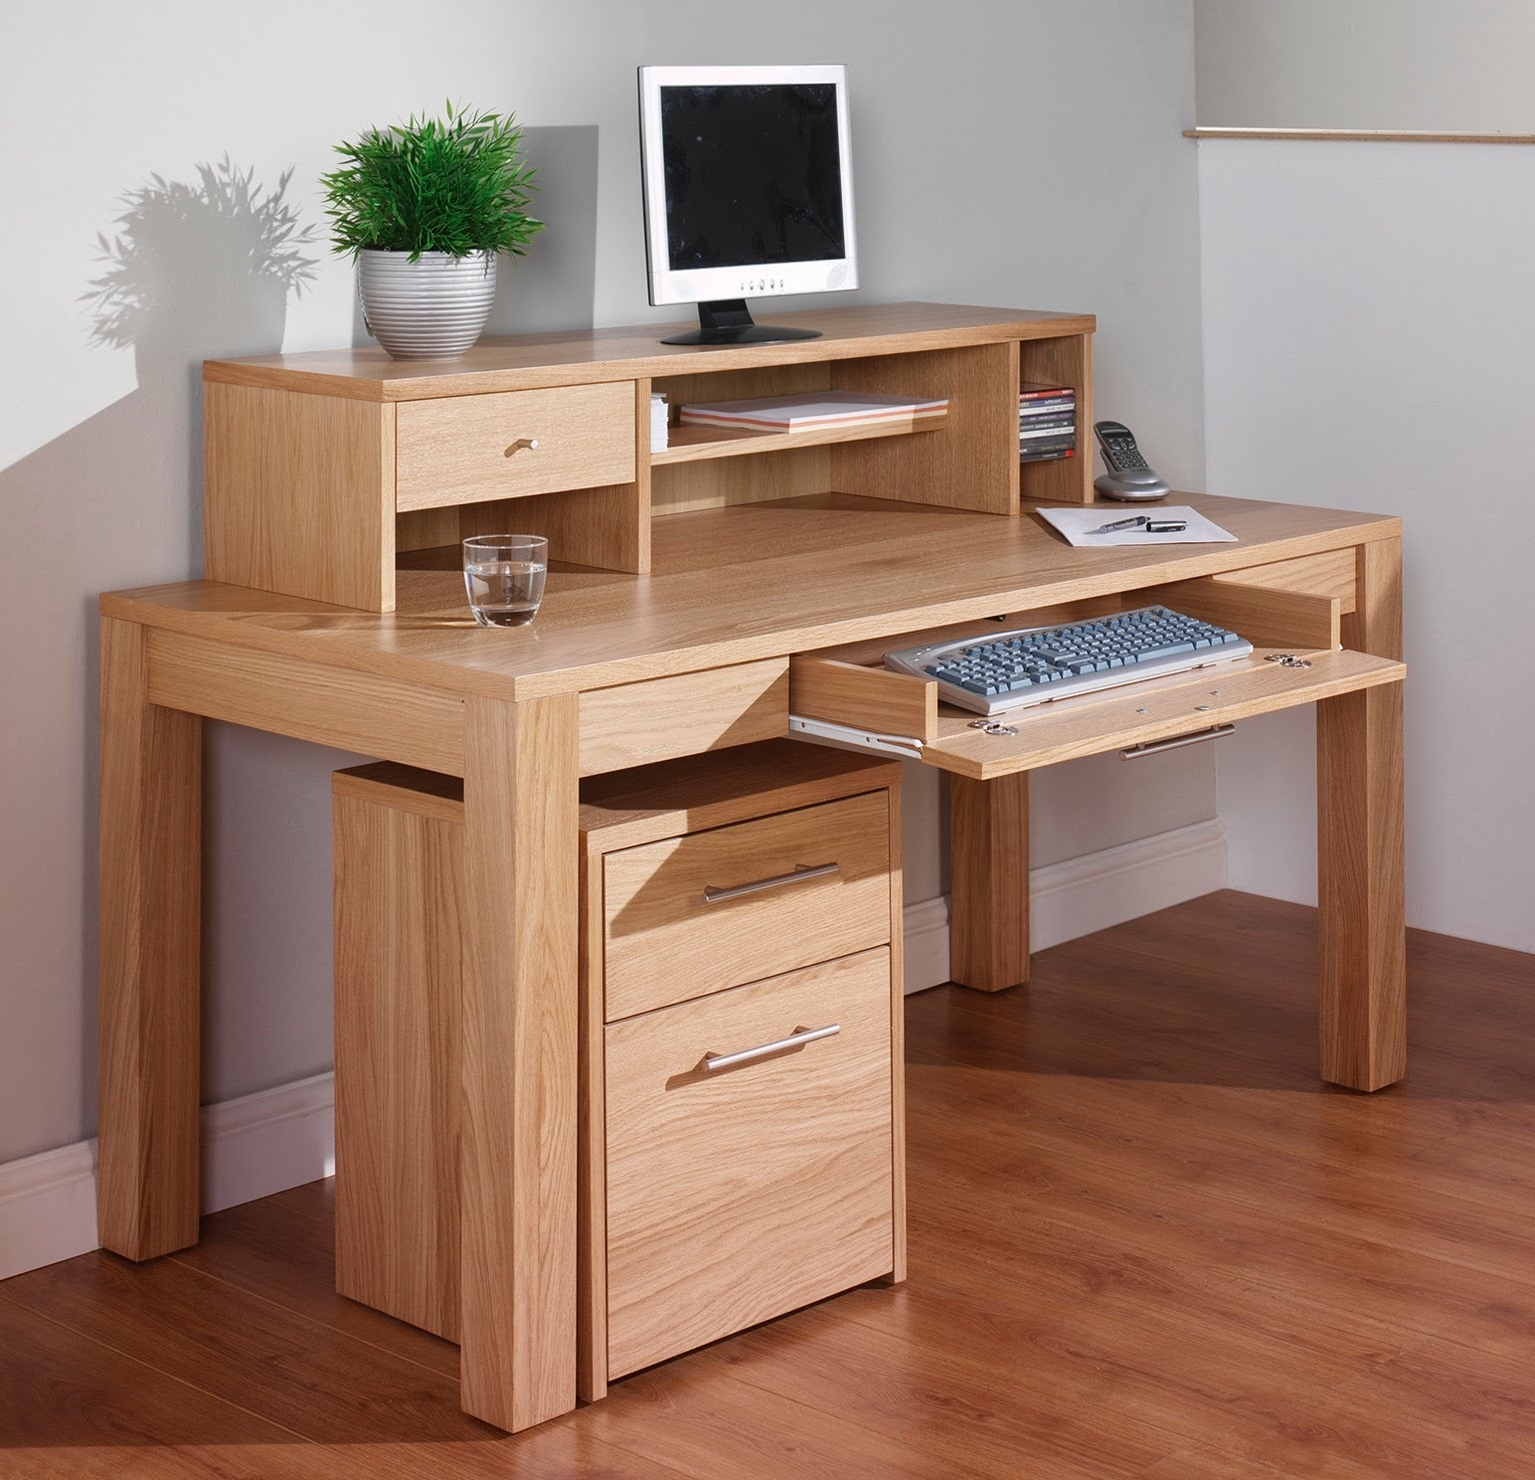 Furniture Modern Narrow Computer Desk Small Wooden 2017 With Inside Trendy Computer Desks With Drawers (View 11 of 20)